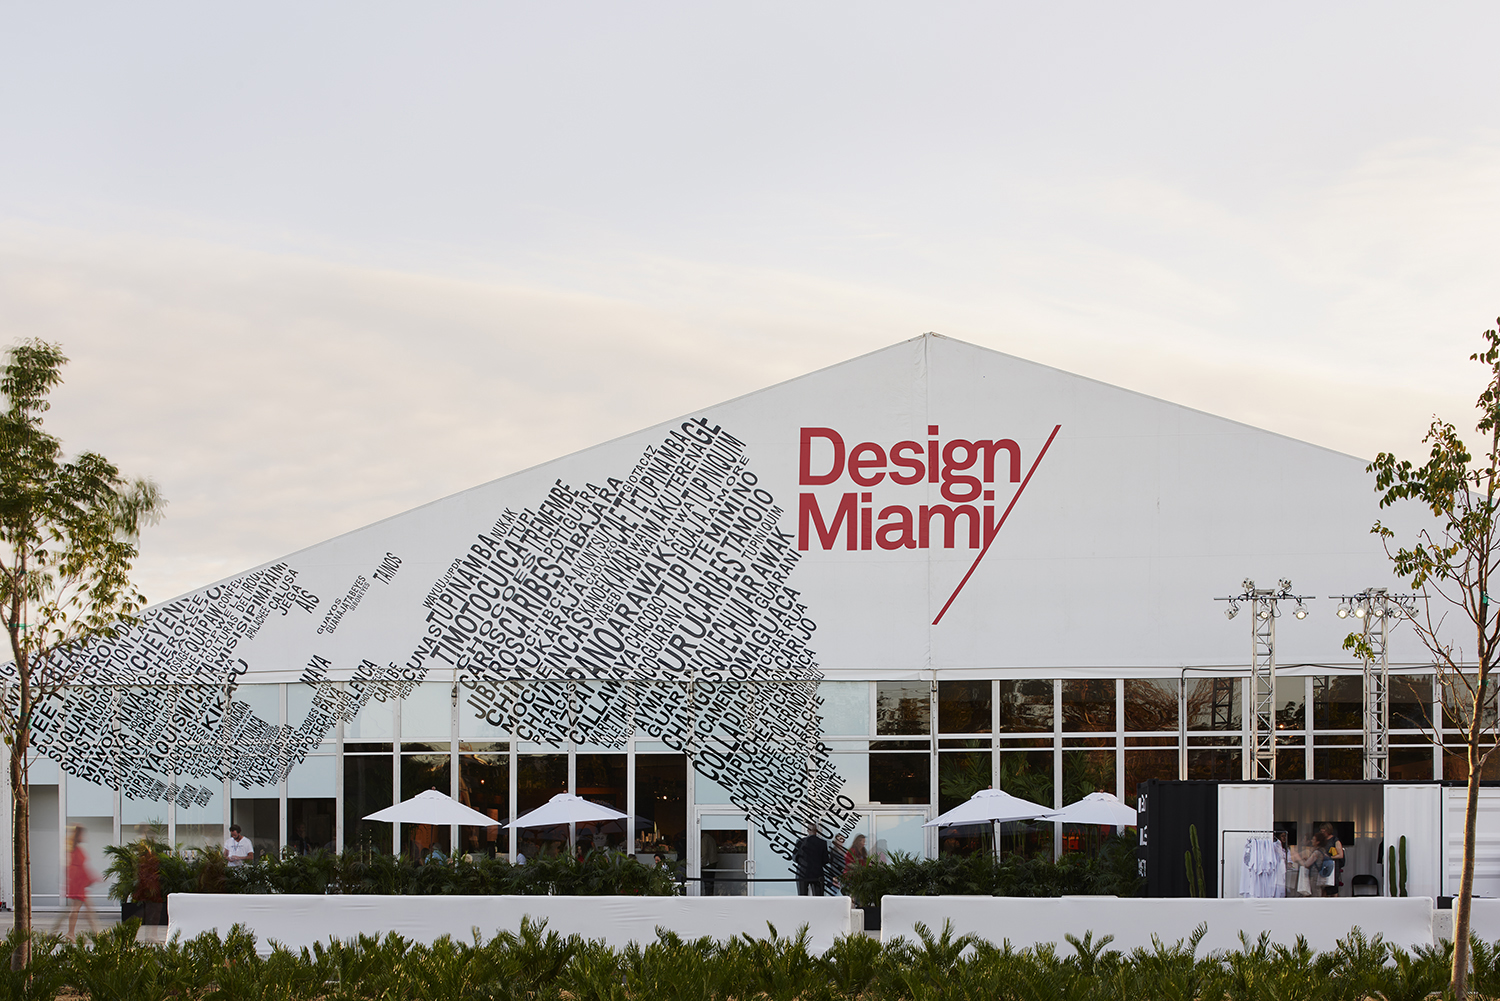 design miami 2019 Design Miami 2019 Event Guide design miami 2019 event guide 3